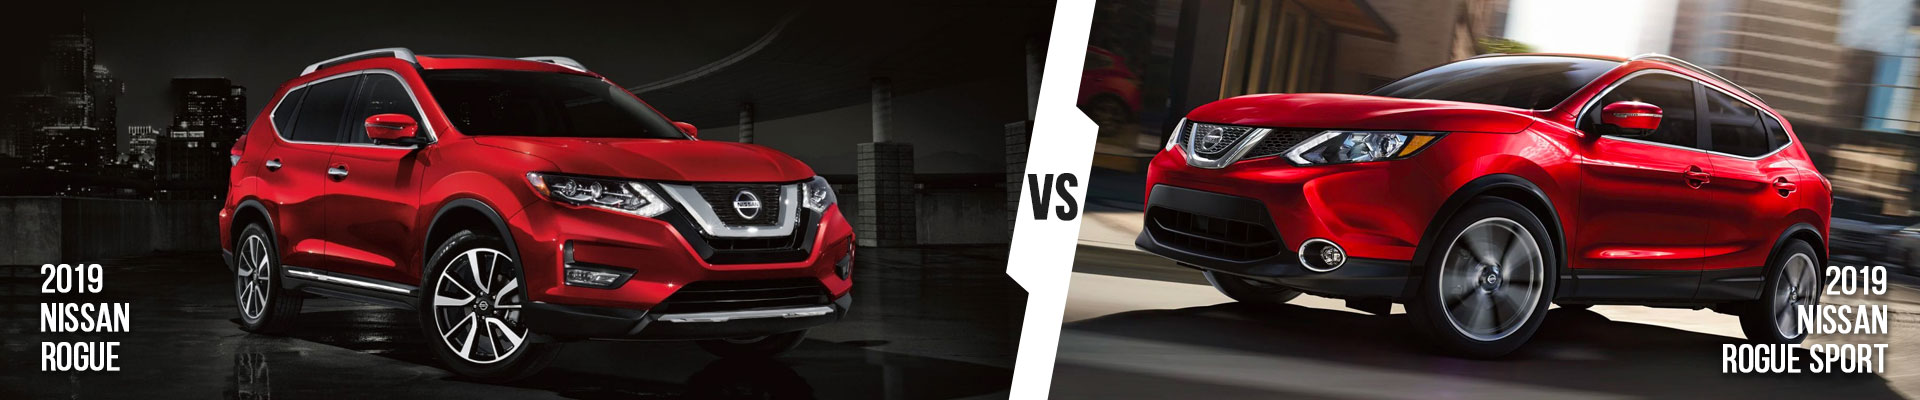 Compare The 2019 Nissan Rogue And Rogue Sport Near Cape Coral, FL